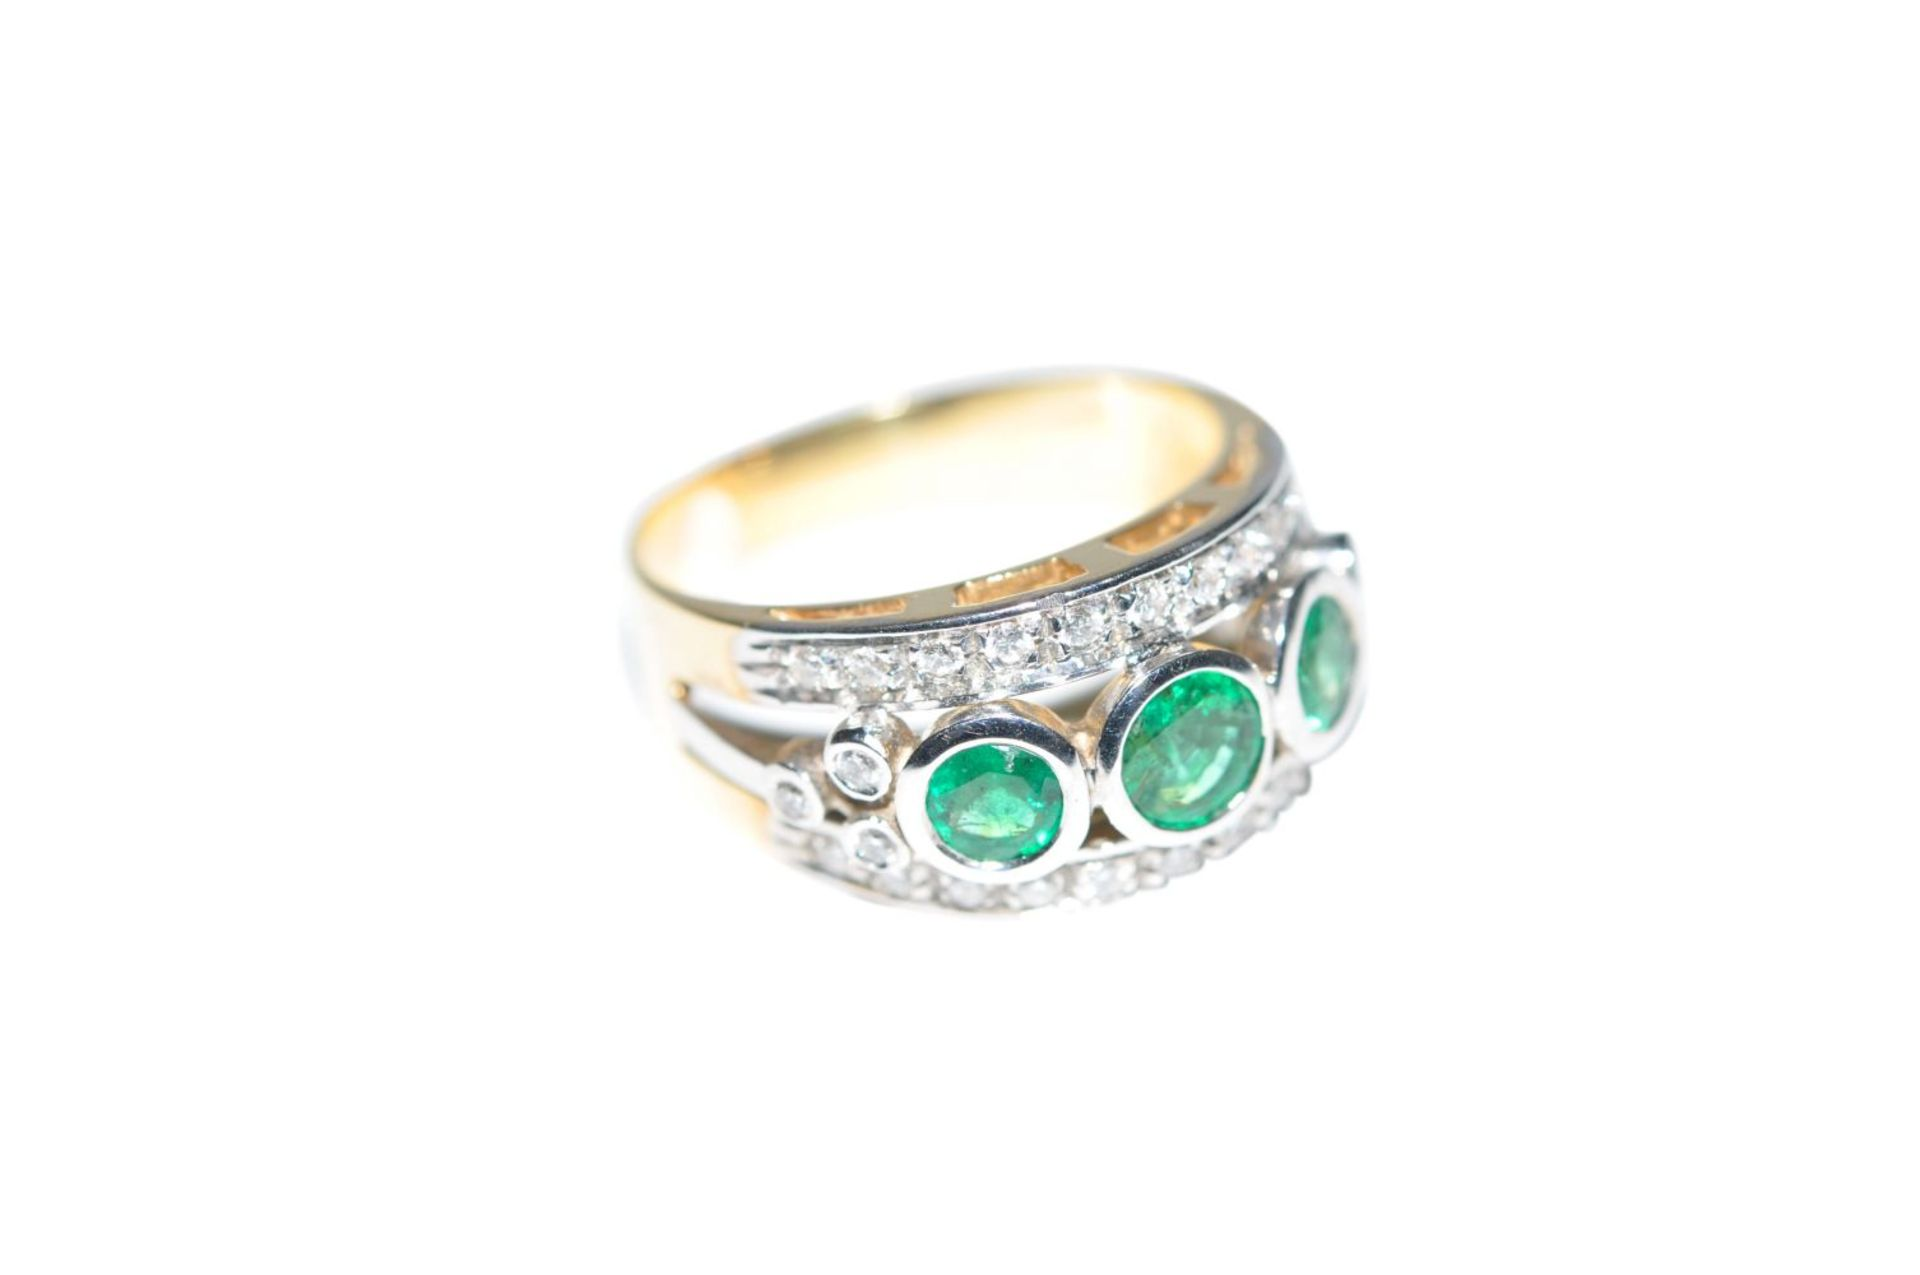 Los 95 - Brilliant ring with emerald18Kt gold ring with diamonds, approx. 0.65ct and emeralds, approx. 0.